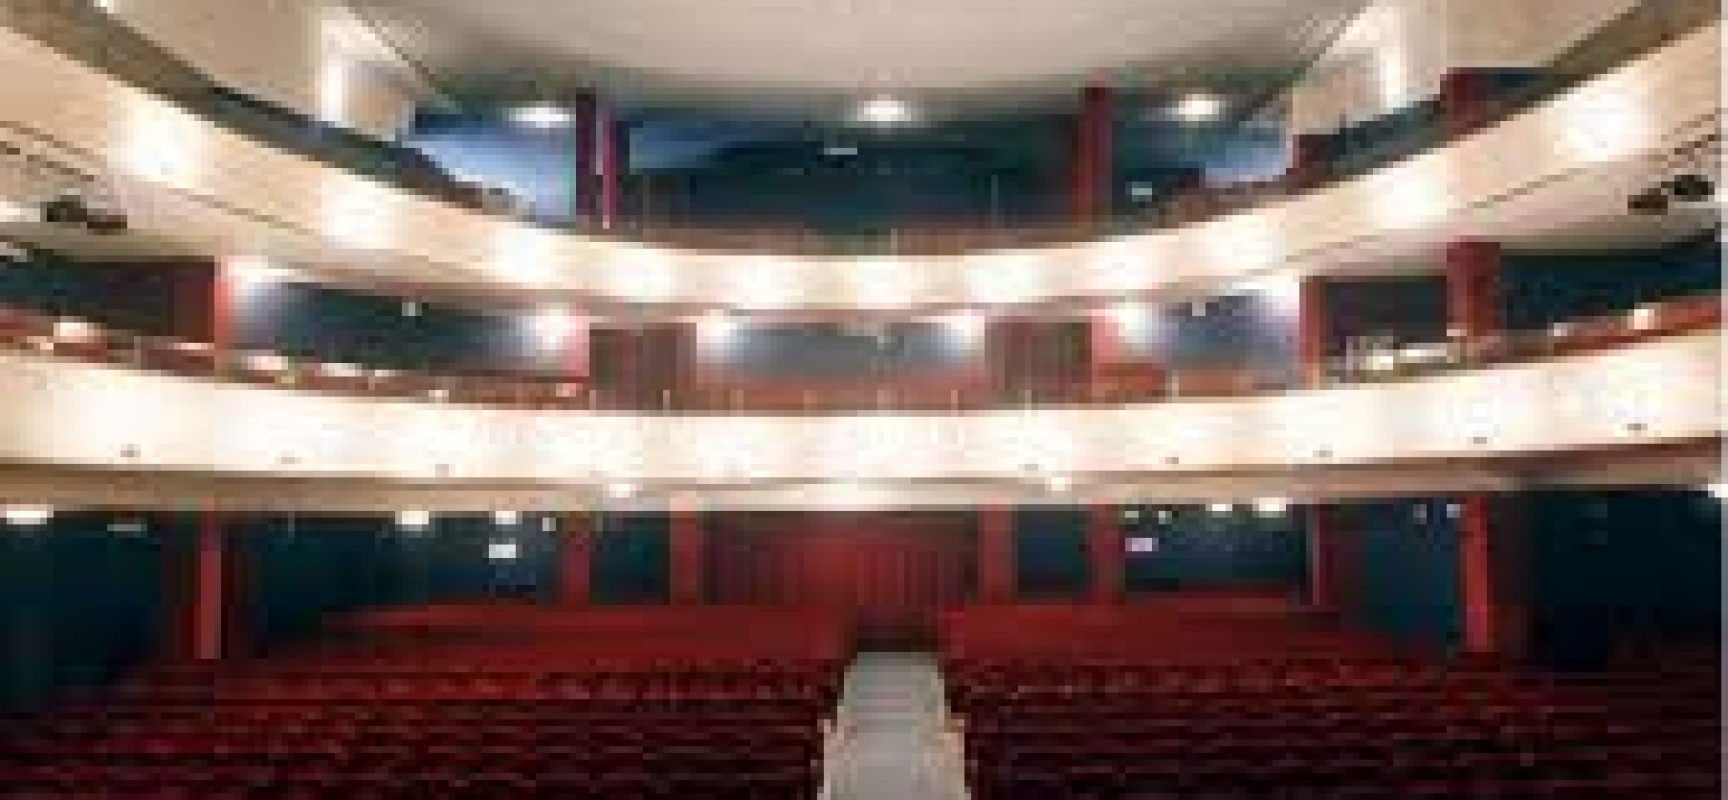 Teatro Diana, due amiche in scena